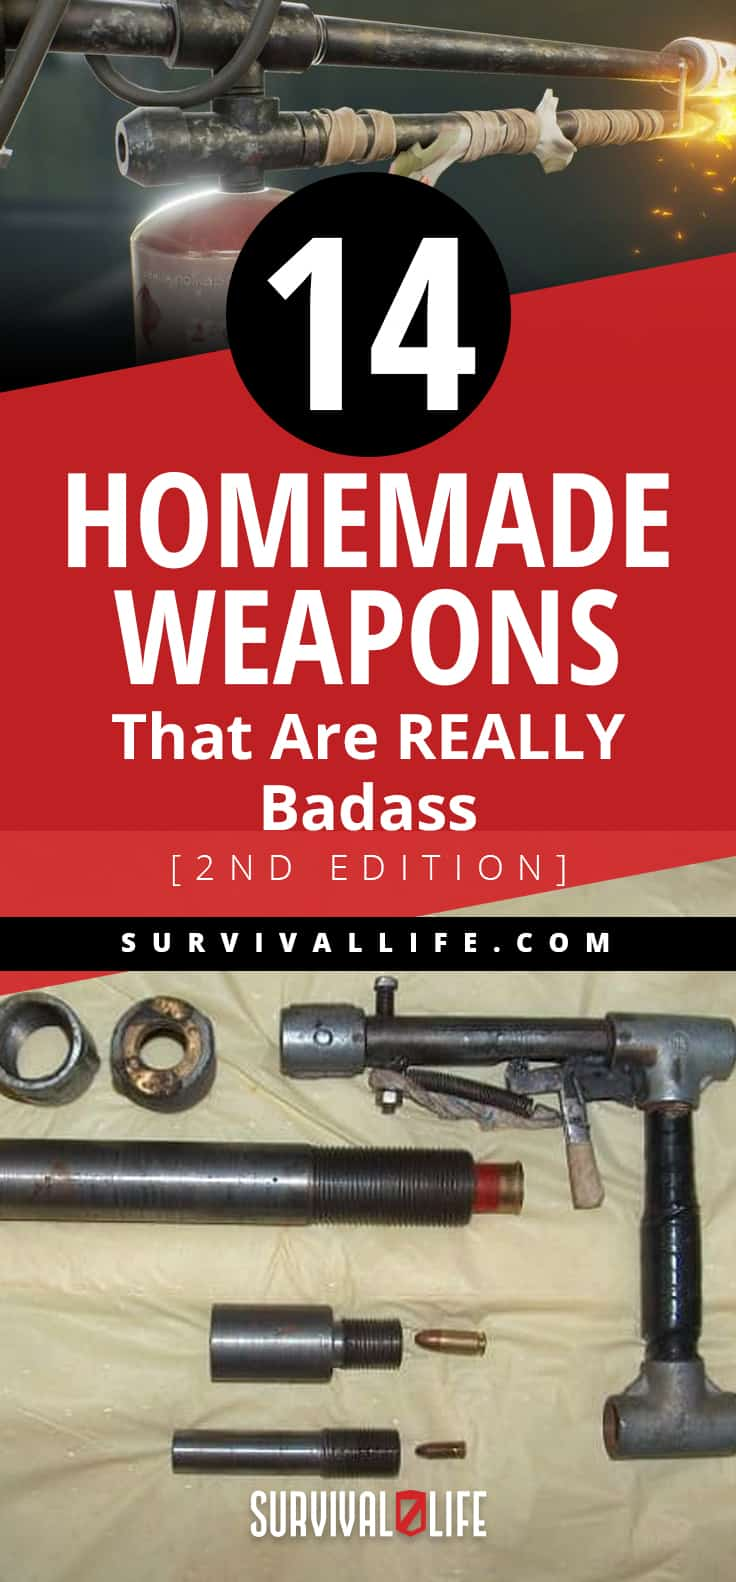 Placard | Homemade Weapons That Are REALLY Badass [2nd Edition] | Survival Life | Unique medieval weapons